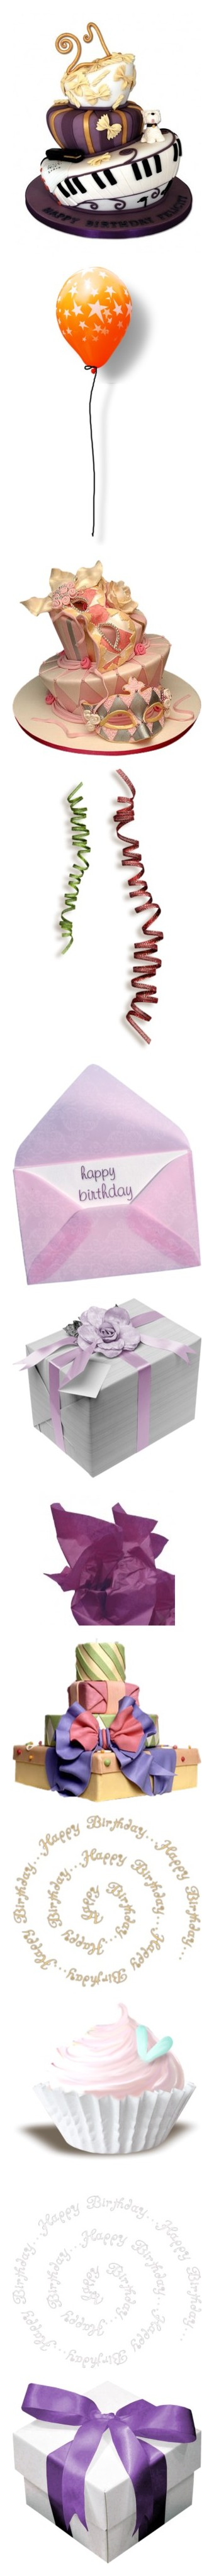 """Birthday & Celebrations 2"" by incogneato ❤ liked on Polyvore featuring food, cake, fillers, balloons, ribbons, bows, ribbons & bows, ribbons and bows, birthday and filler"